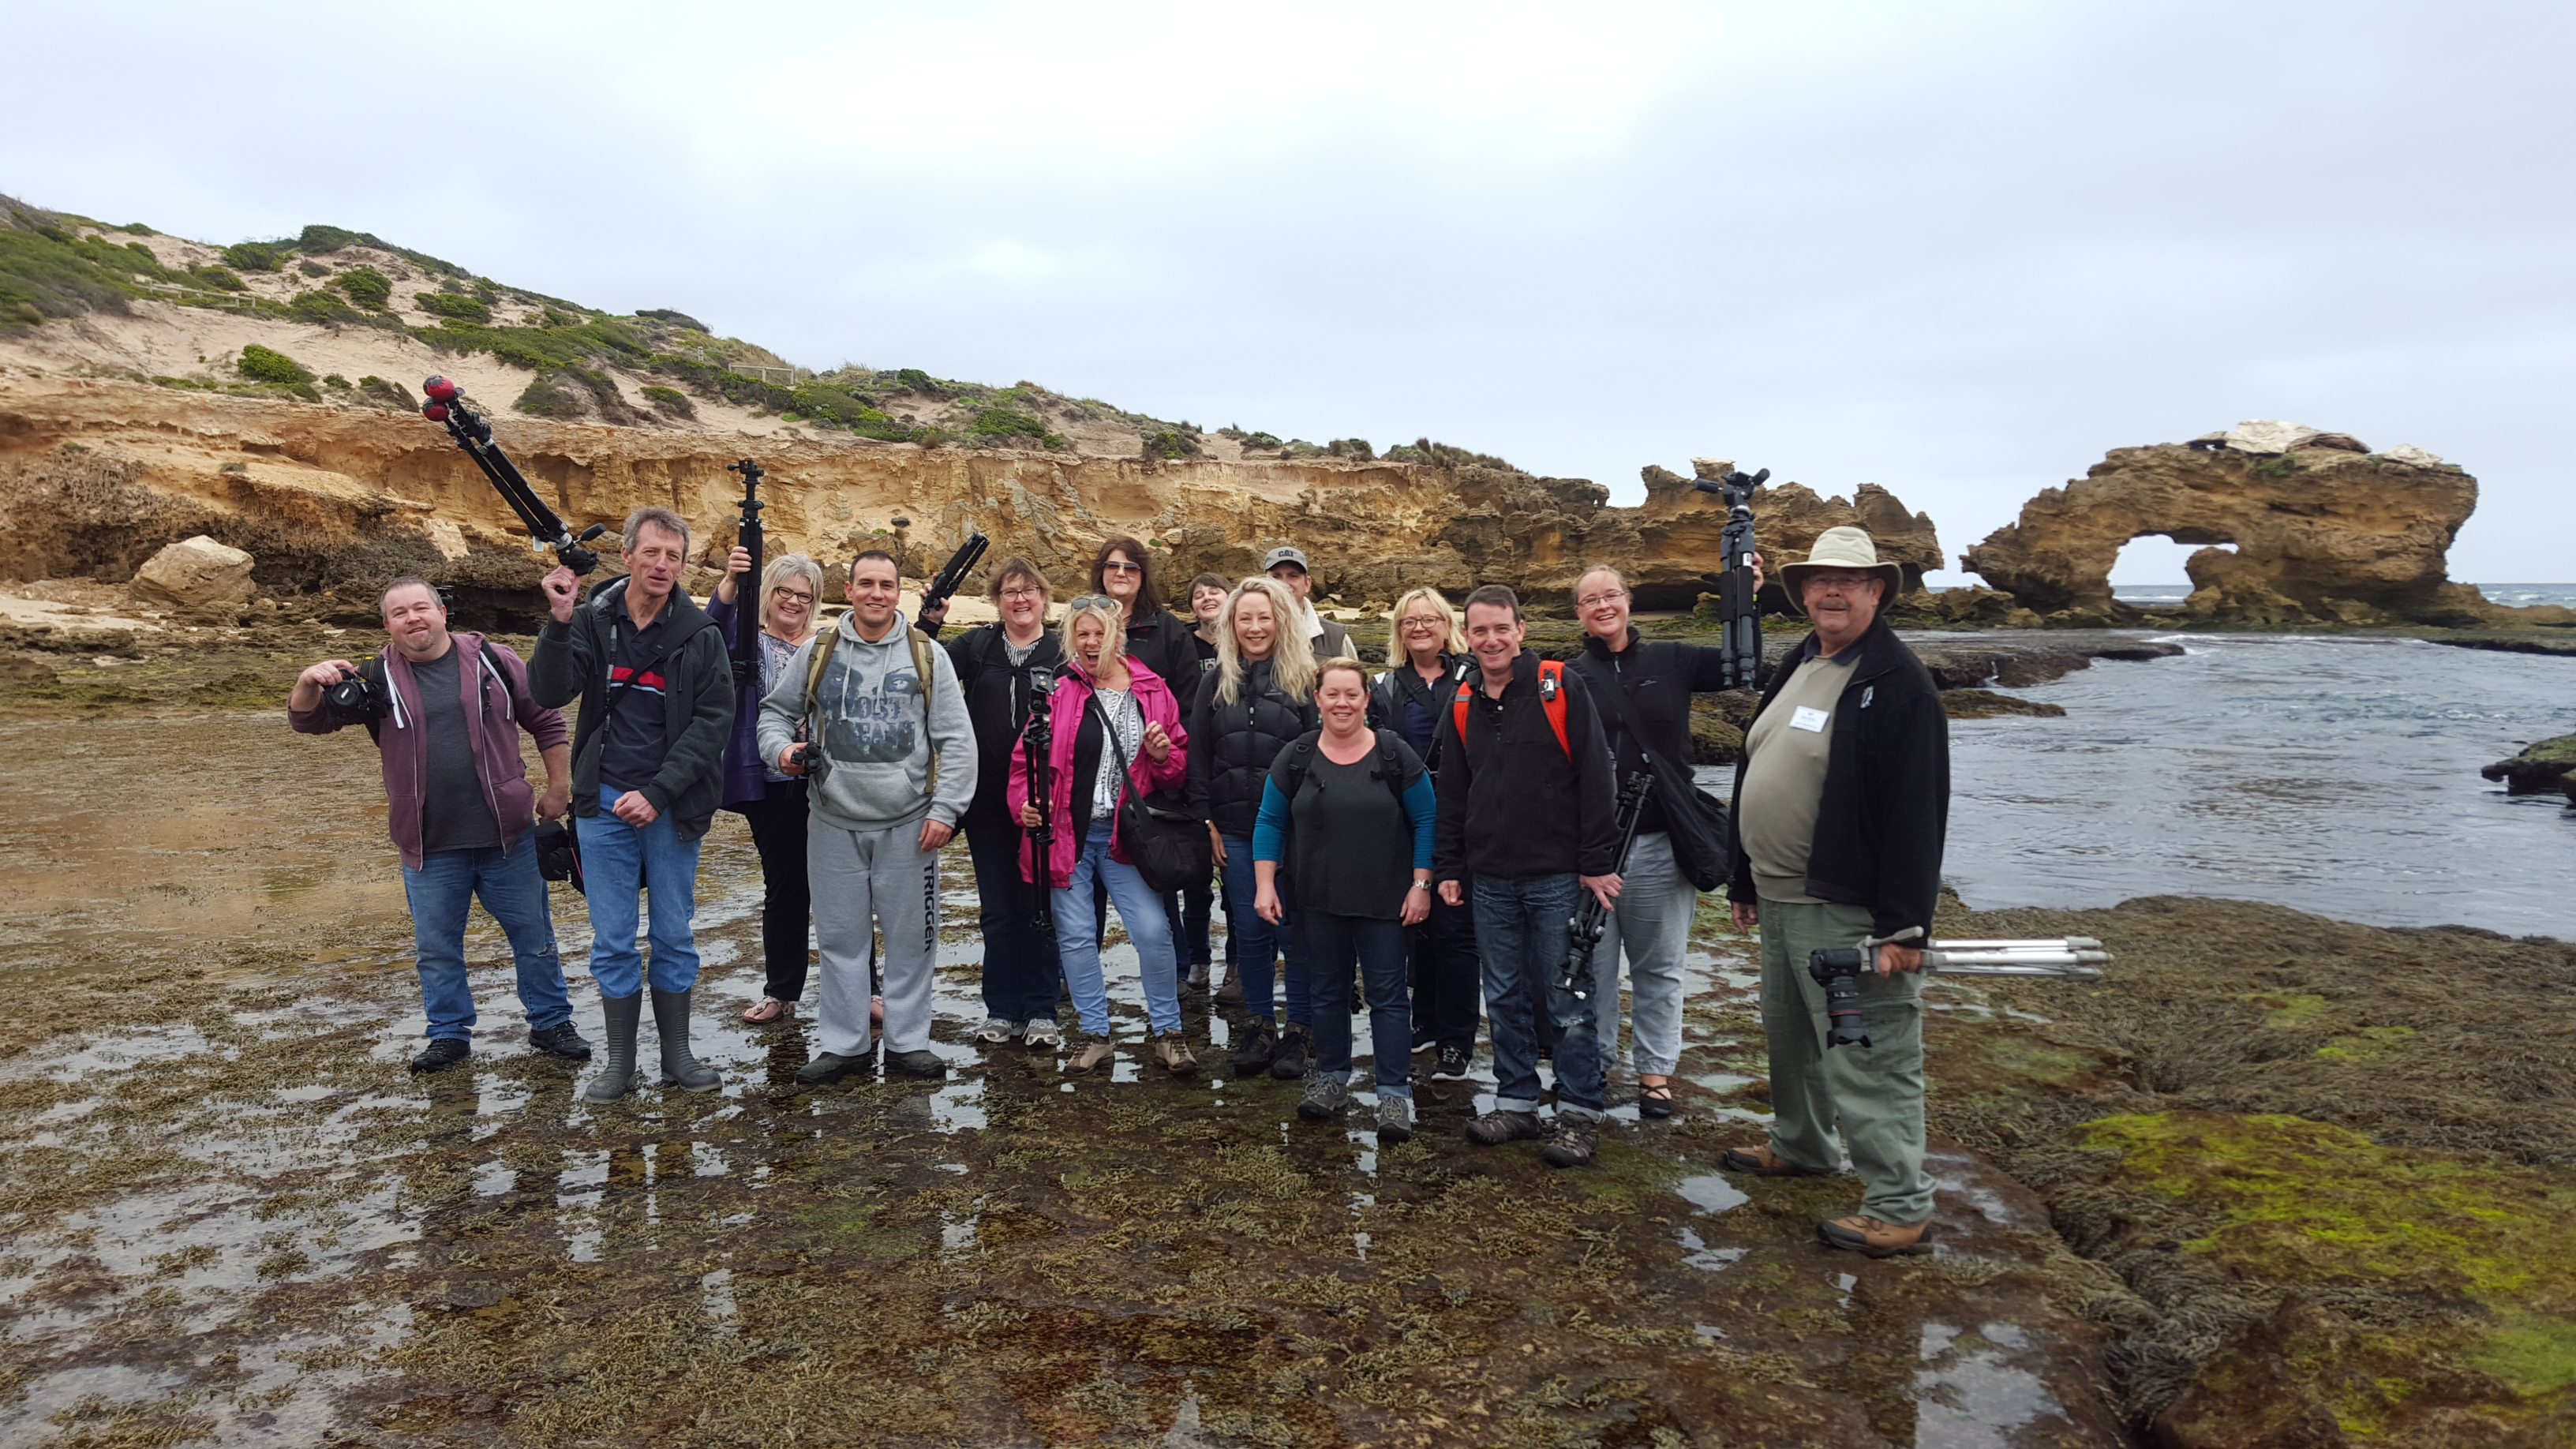 ND group excursion, bridgewater bay, jim worrall, jason cincotta, michael stringer, mornington peninsula, photo excursion